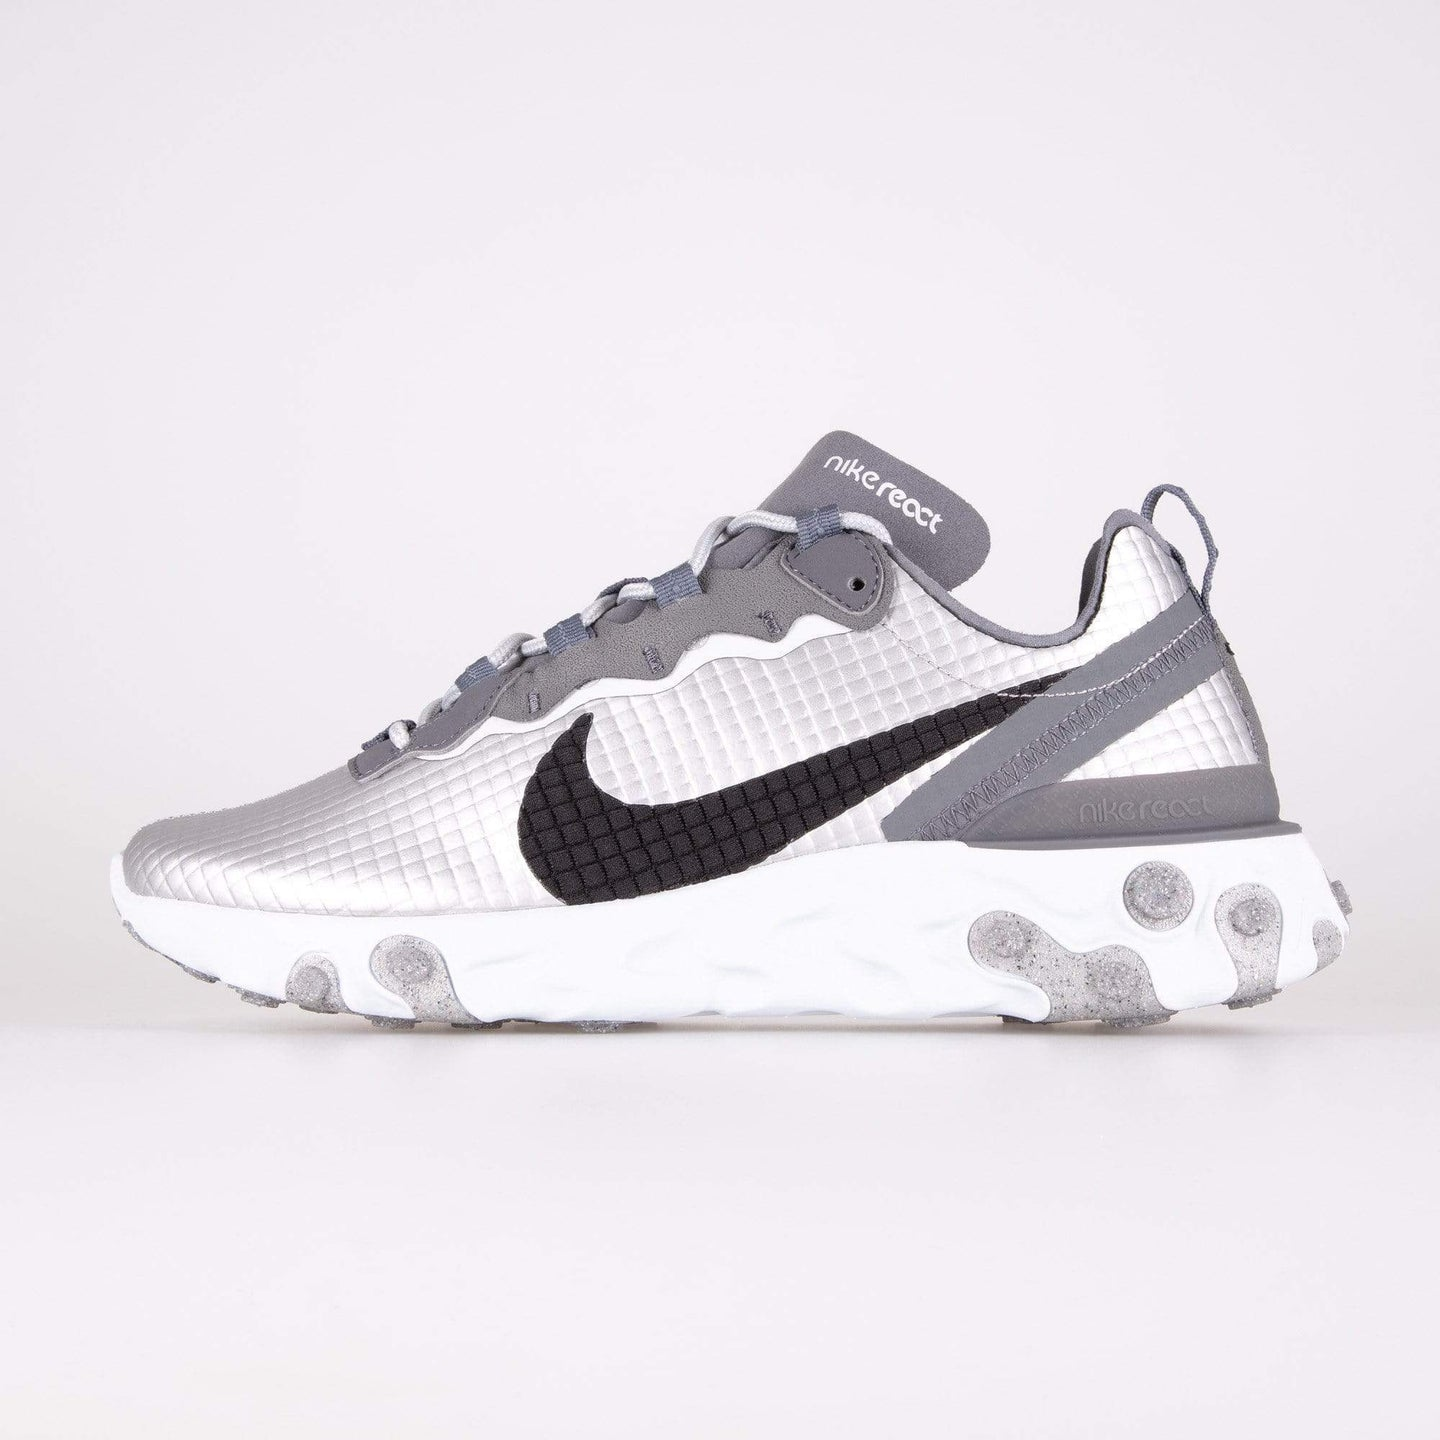 Nike React Element 55 Premium - Metallic Silver / Black UK 7 CI38350017 193151453891 Nike Trainers